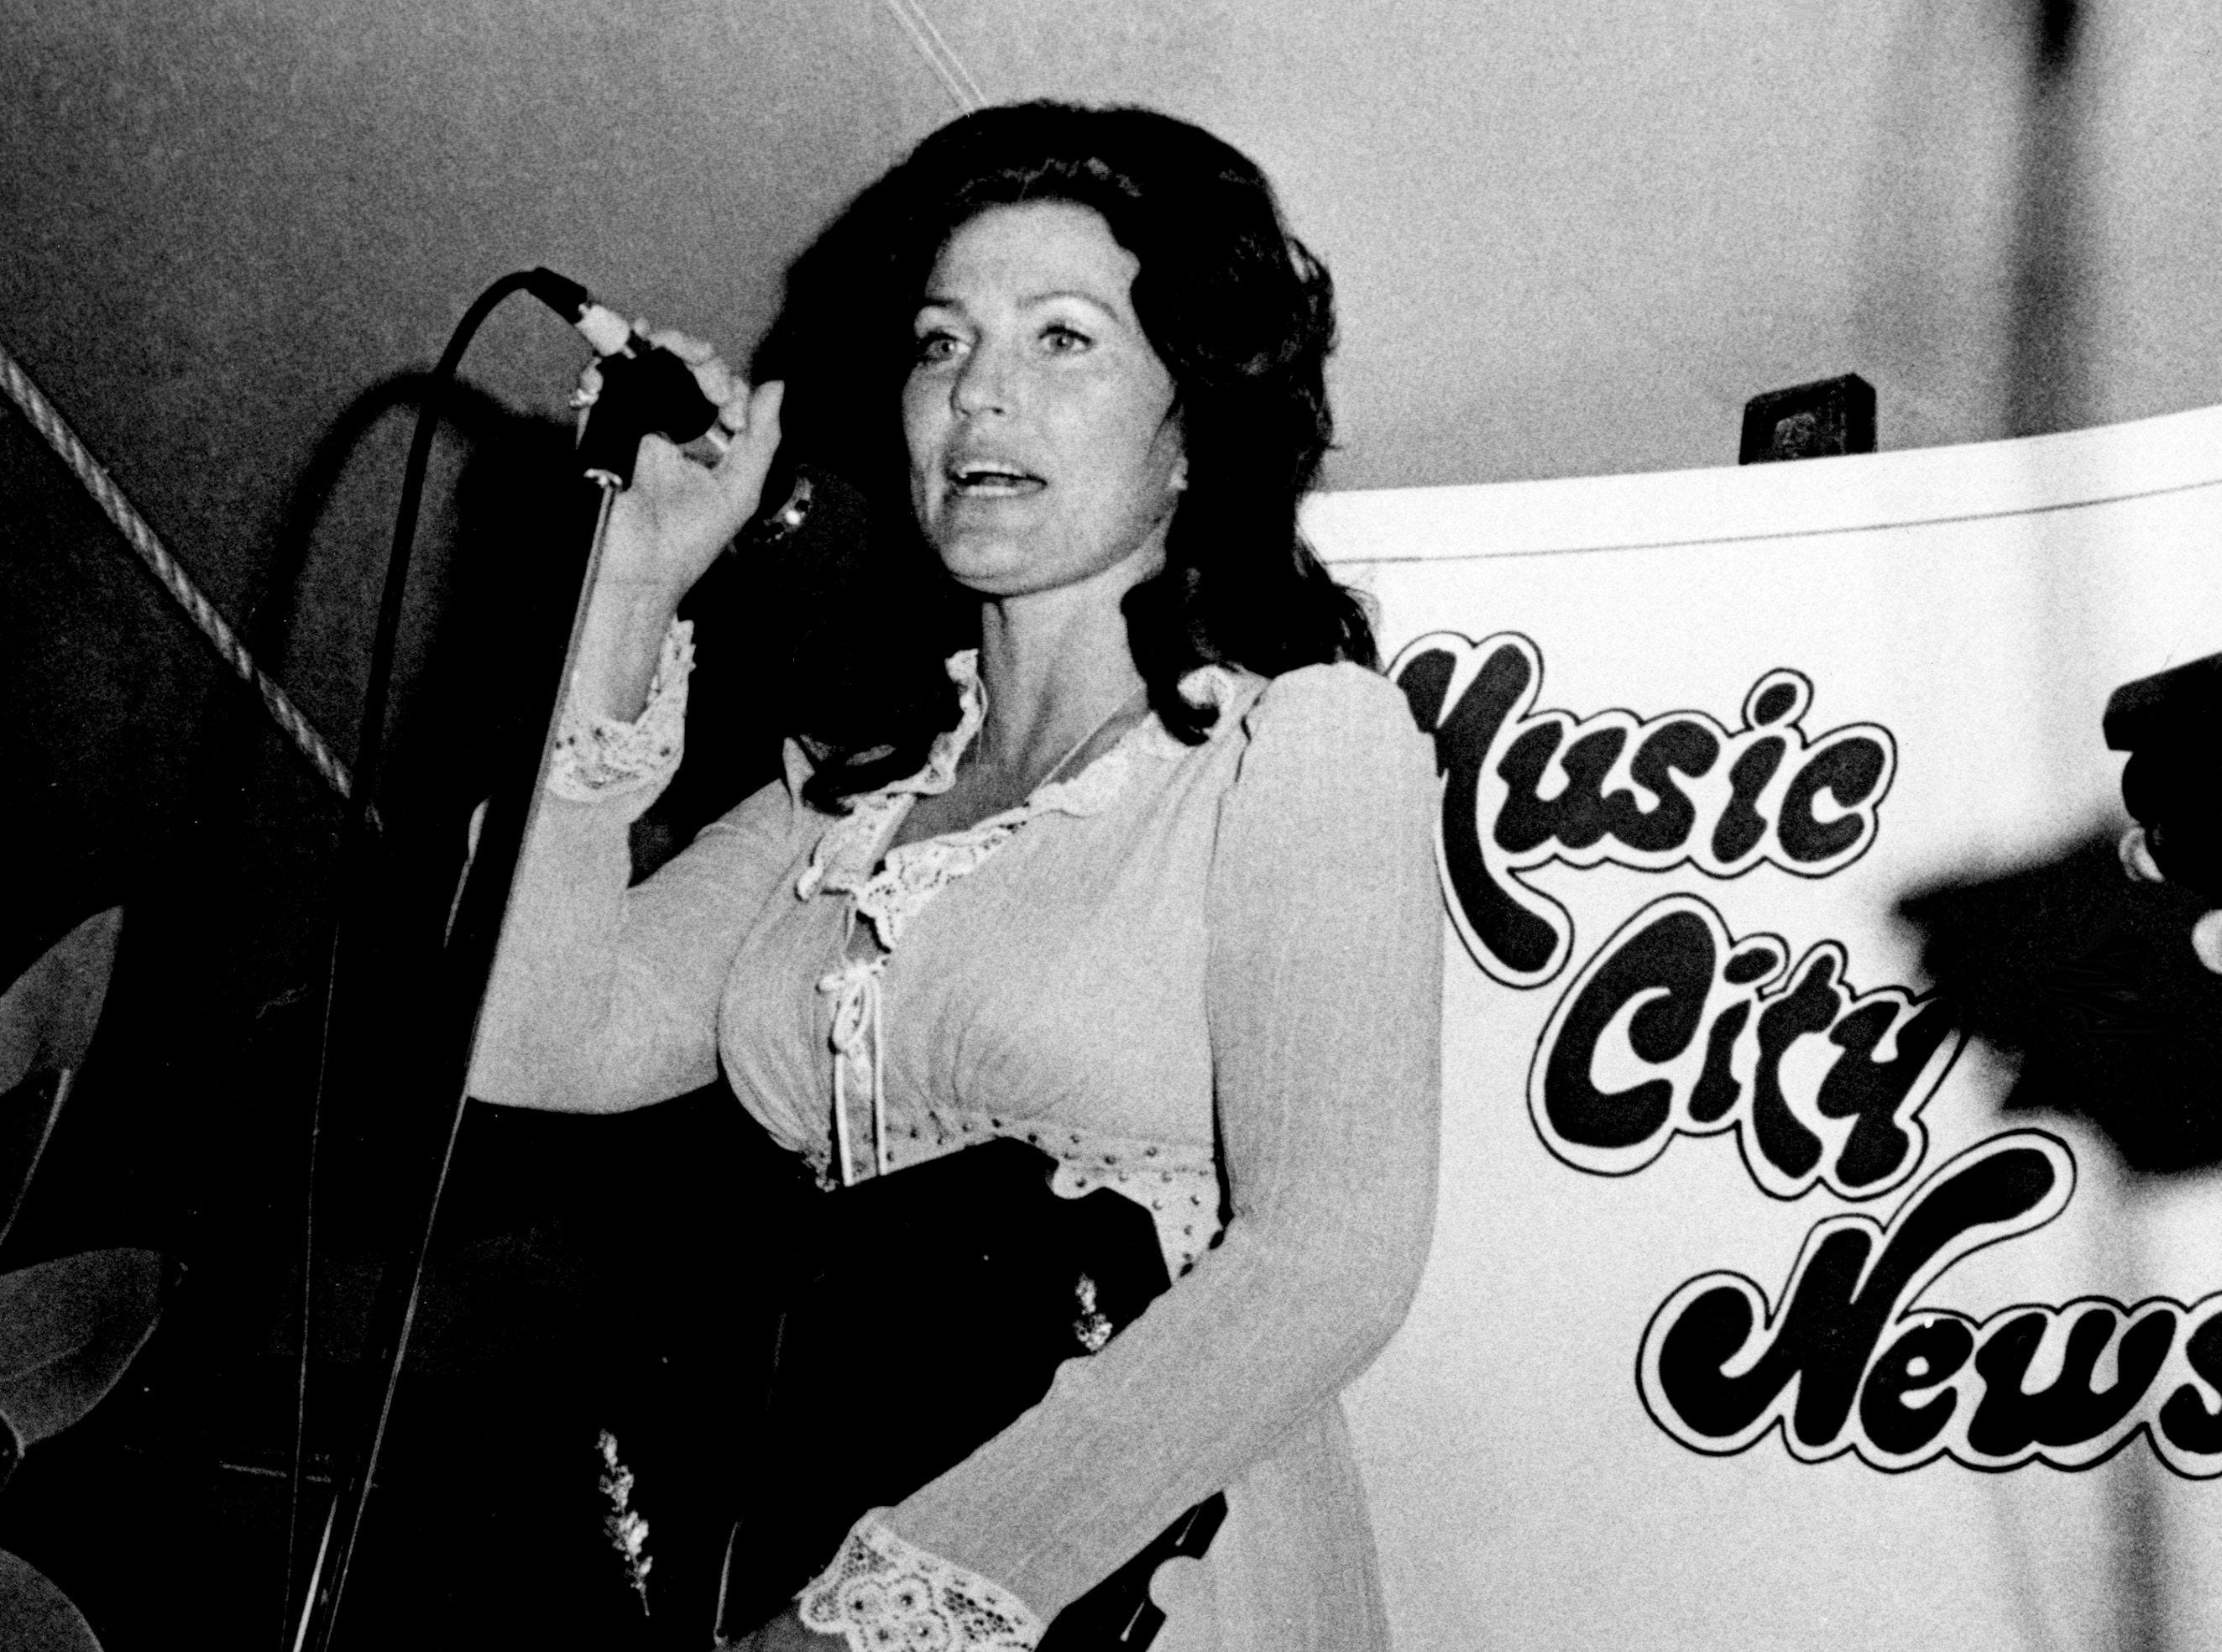 Loretta Lynn accepting her No. 1 Female Artist from the 10th annual Music City News Popularity Poll awards at the IFCO dinner June 9, 1976. Lynn's victory in the female artist category was her 10th in as many years of voting by the readers of Music City News.